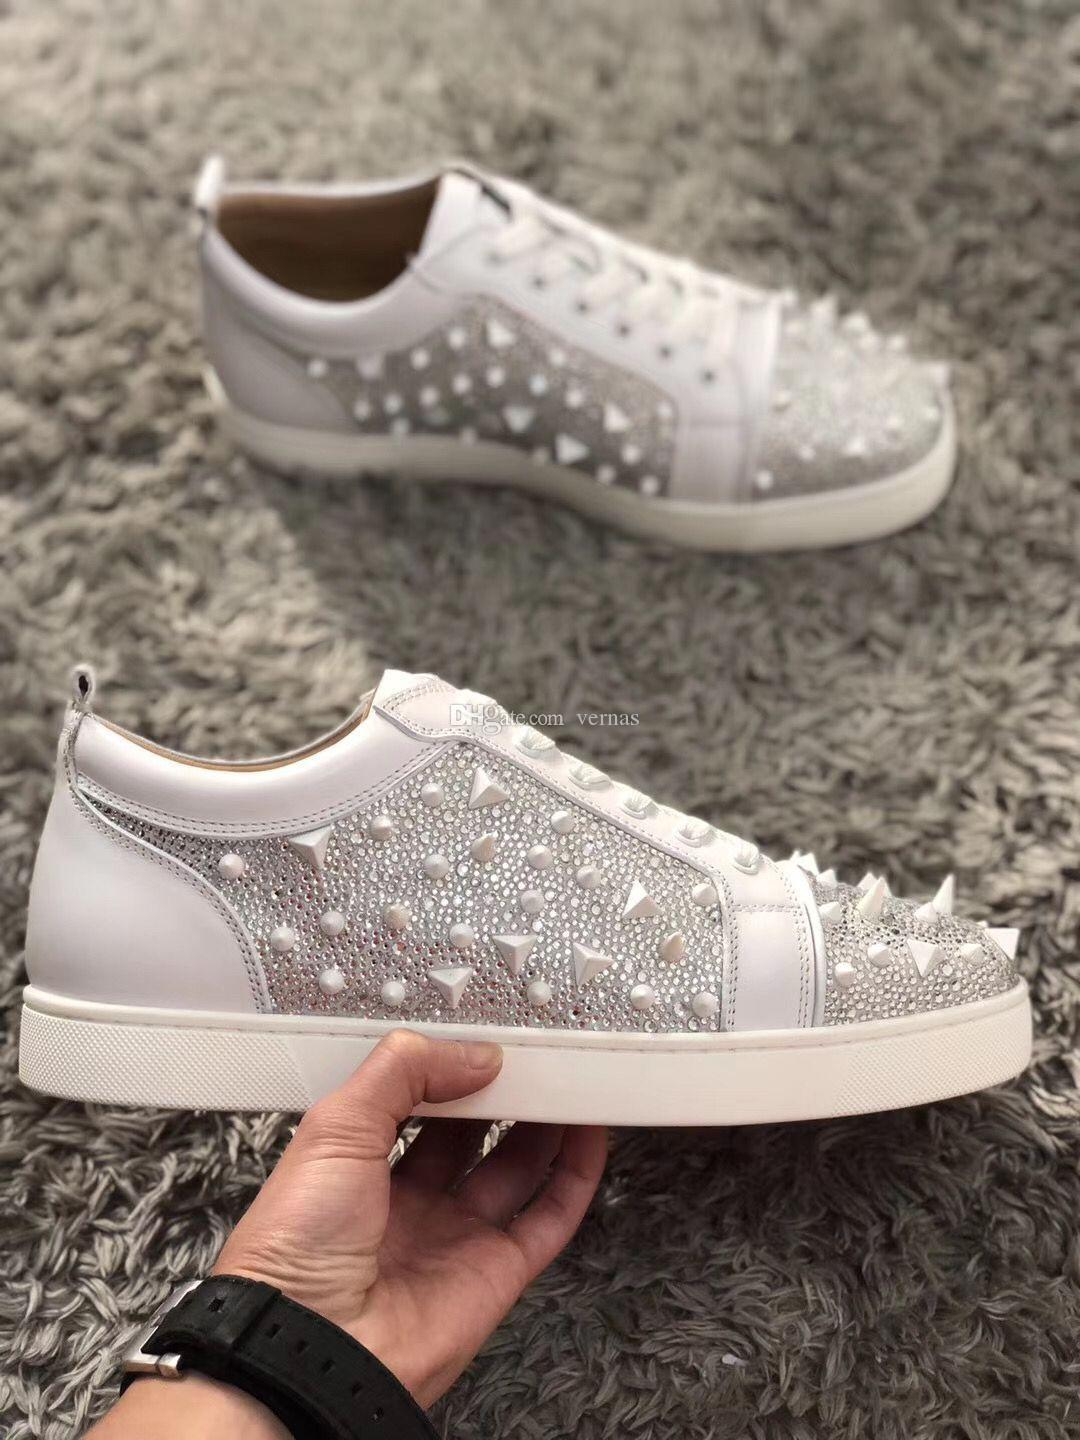 2021Hot Sale Red Bottom Low Cut Spikes Flats Shoes For Men Women Leather Sneakers Casual Shoes With Box Dust Bag EU35-46